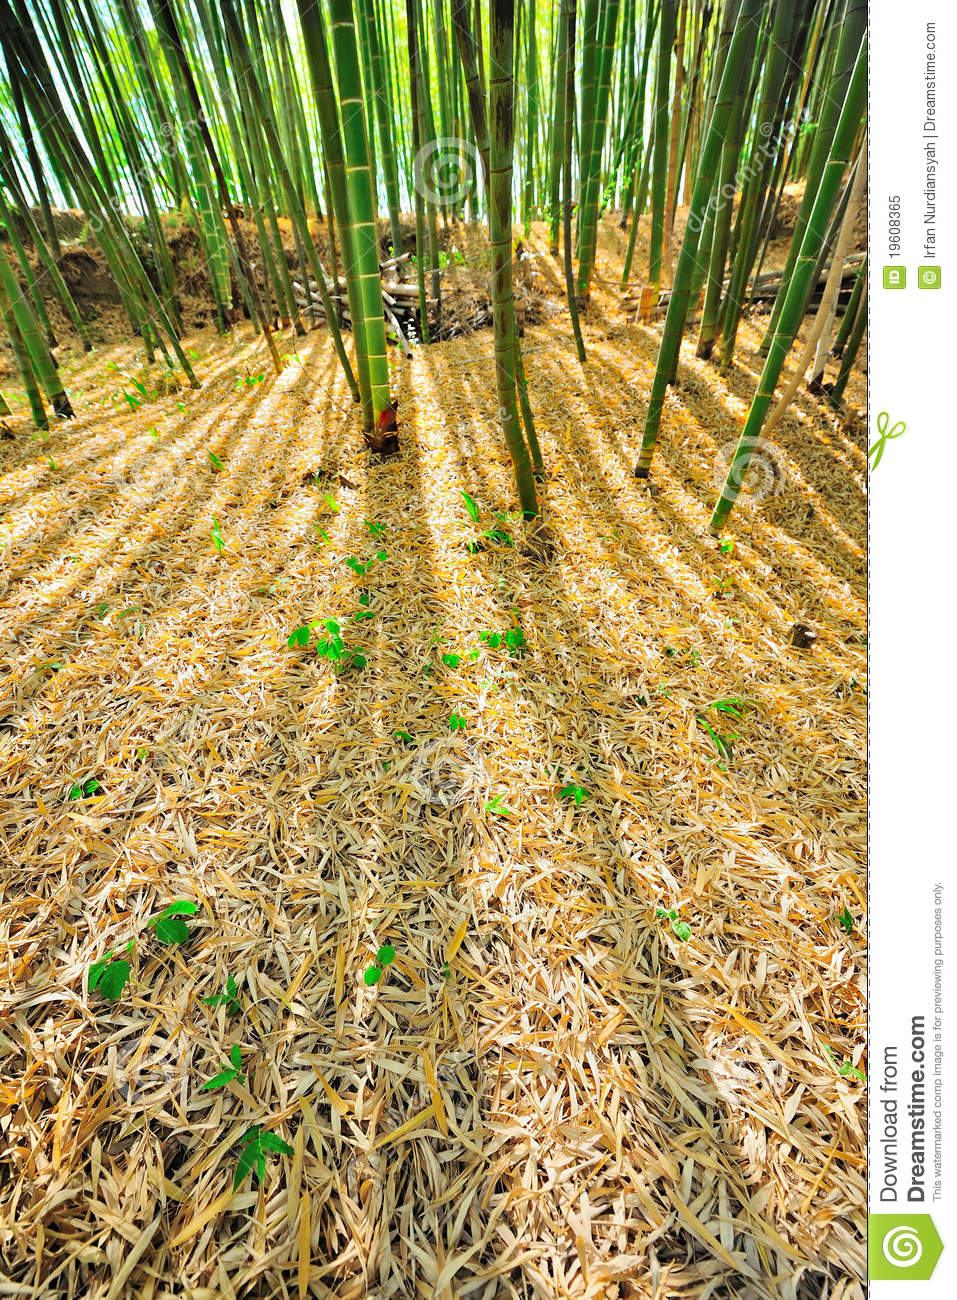 bamboo forest mulch humus royalty free stock photo - image: 19608365